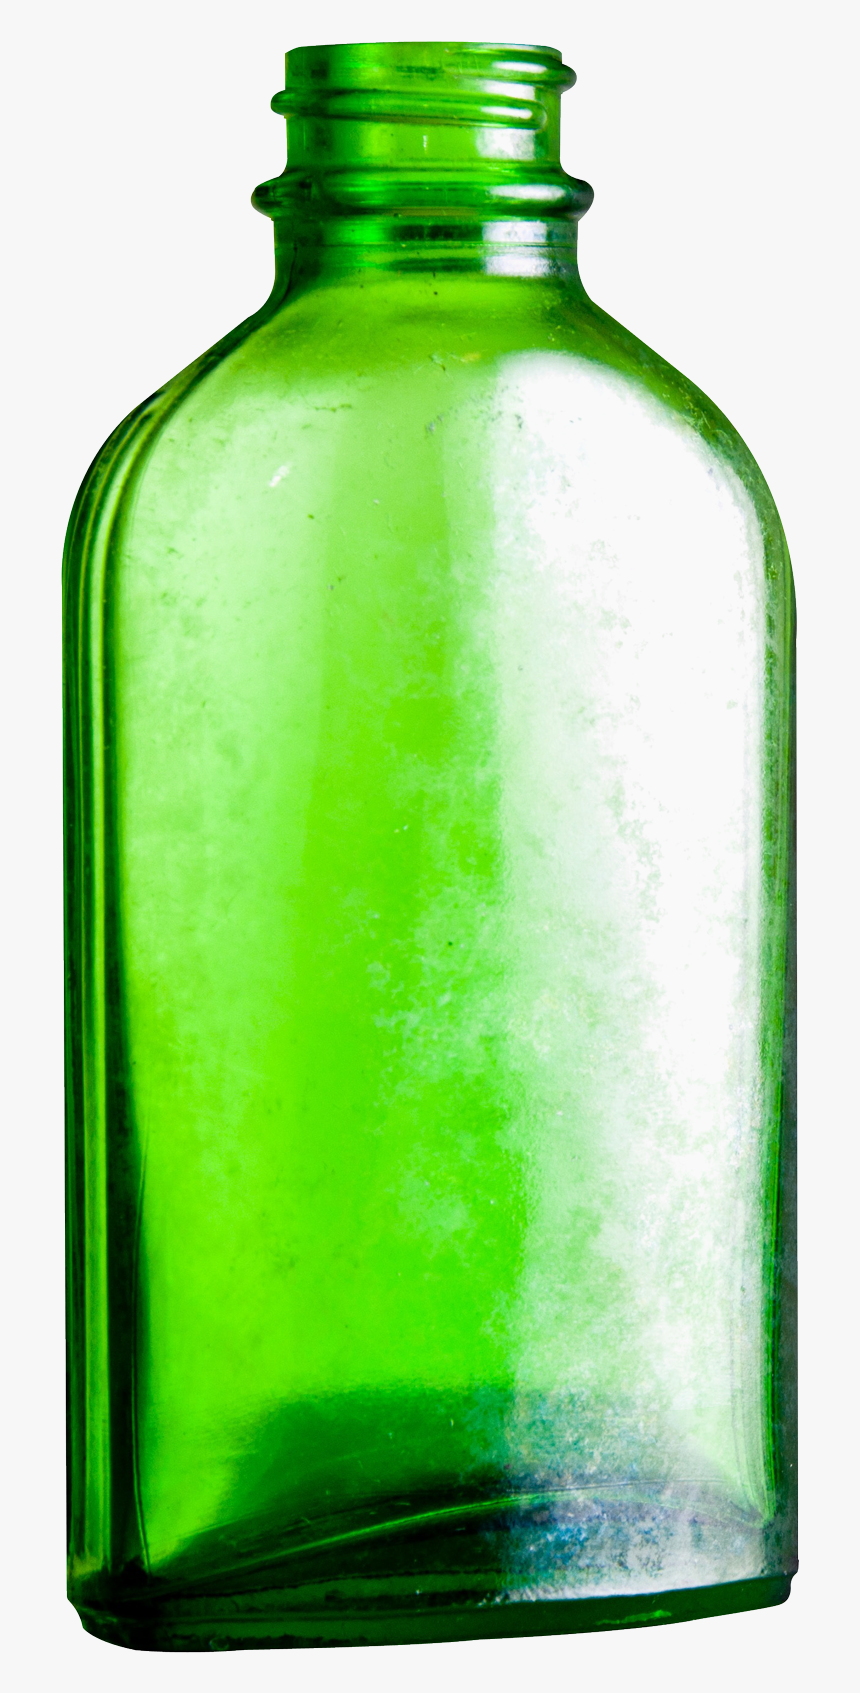 Empty Glass Bottle Png Image - Green Glass Bottle Png, Transparent Png, Free Download